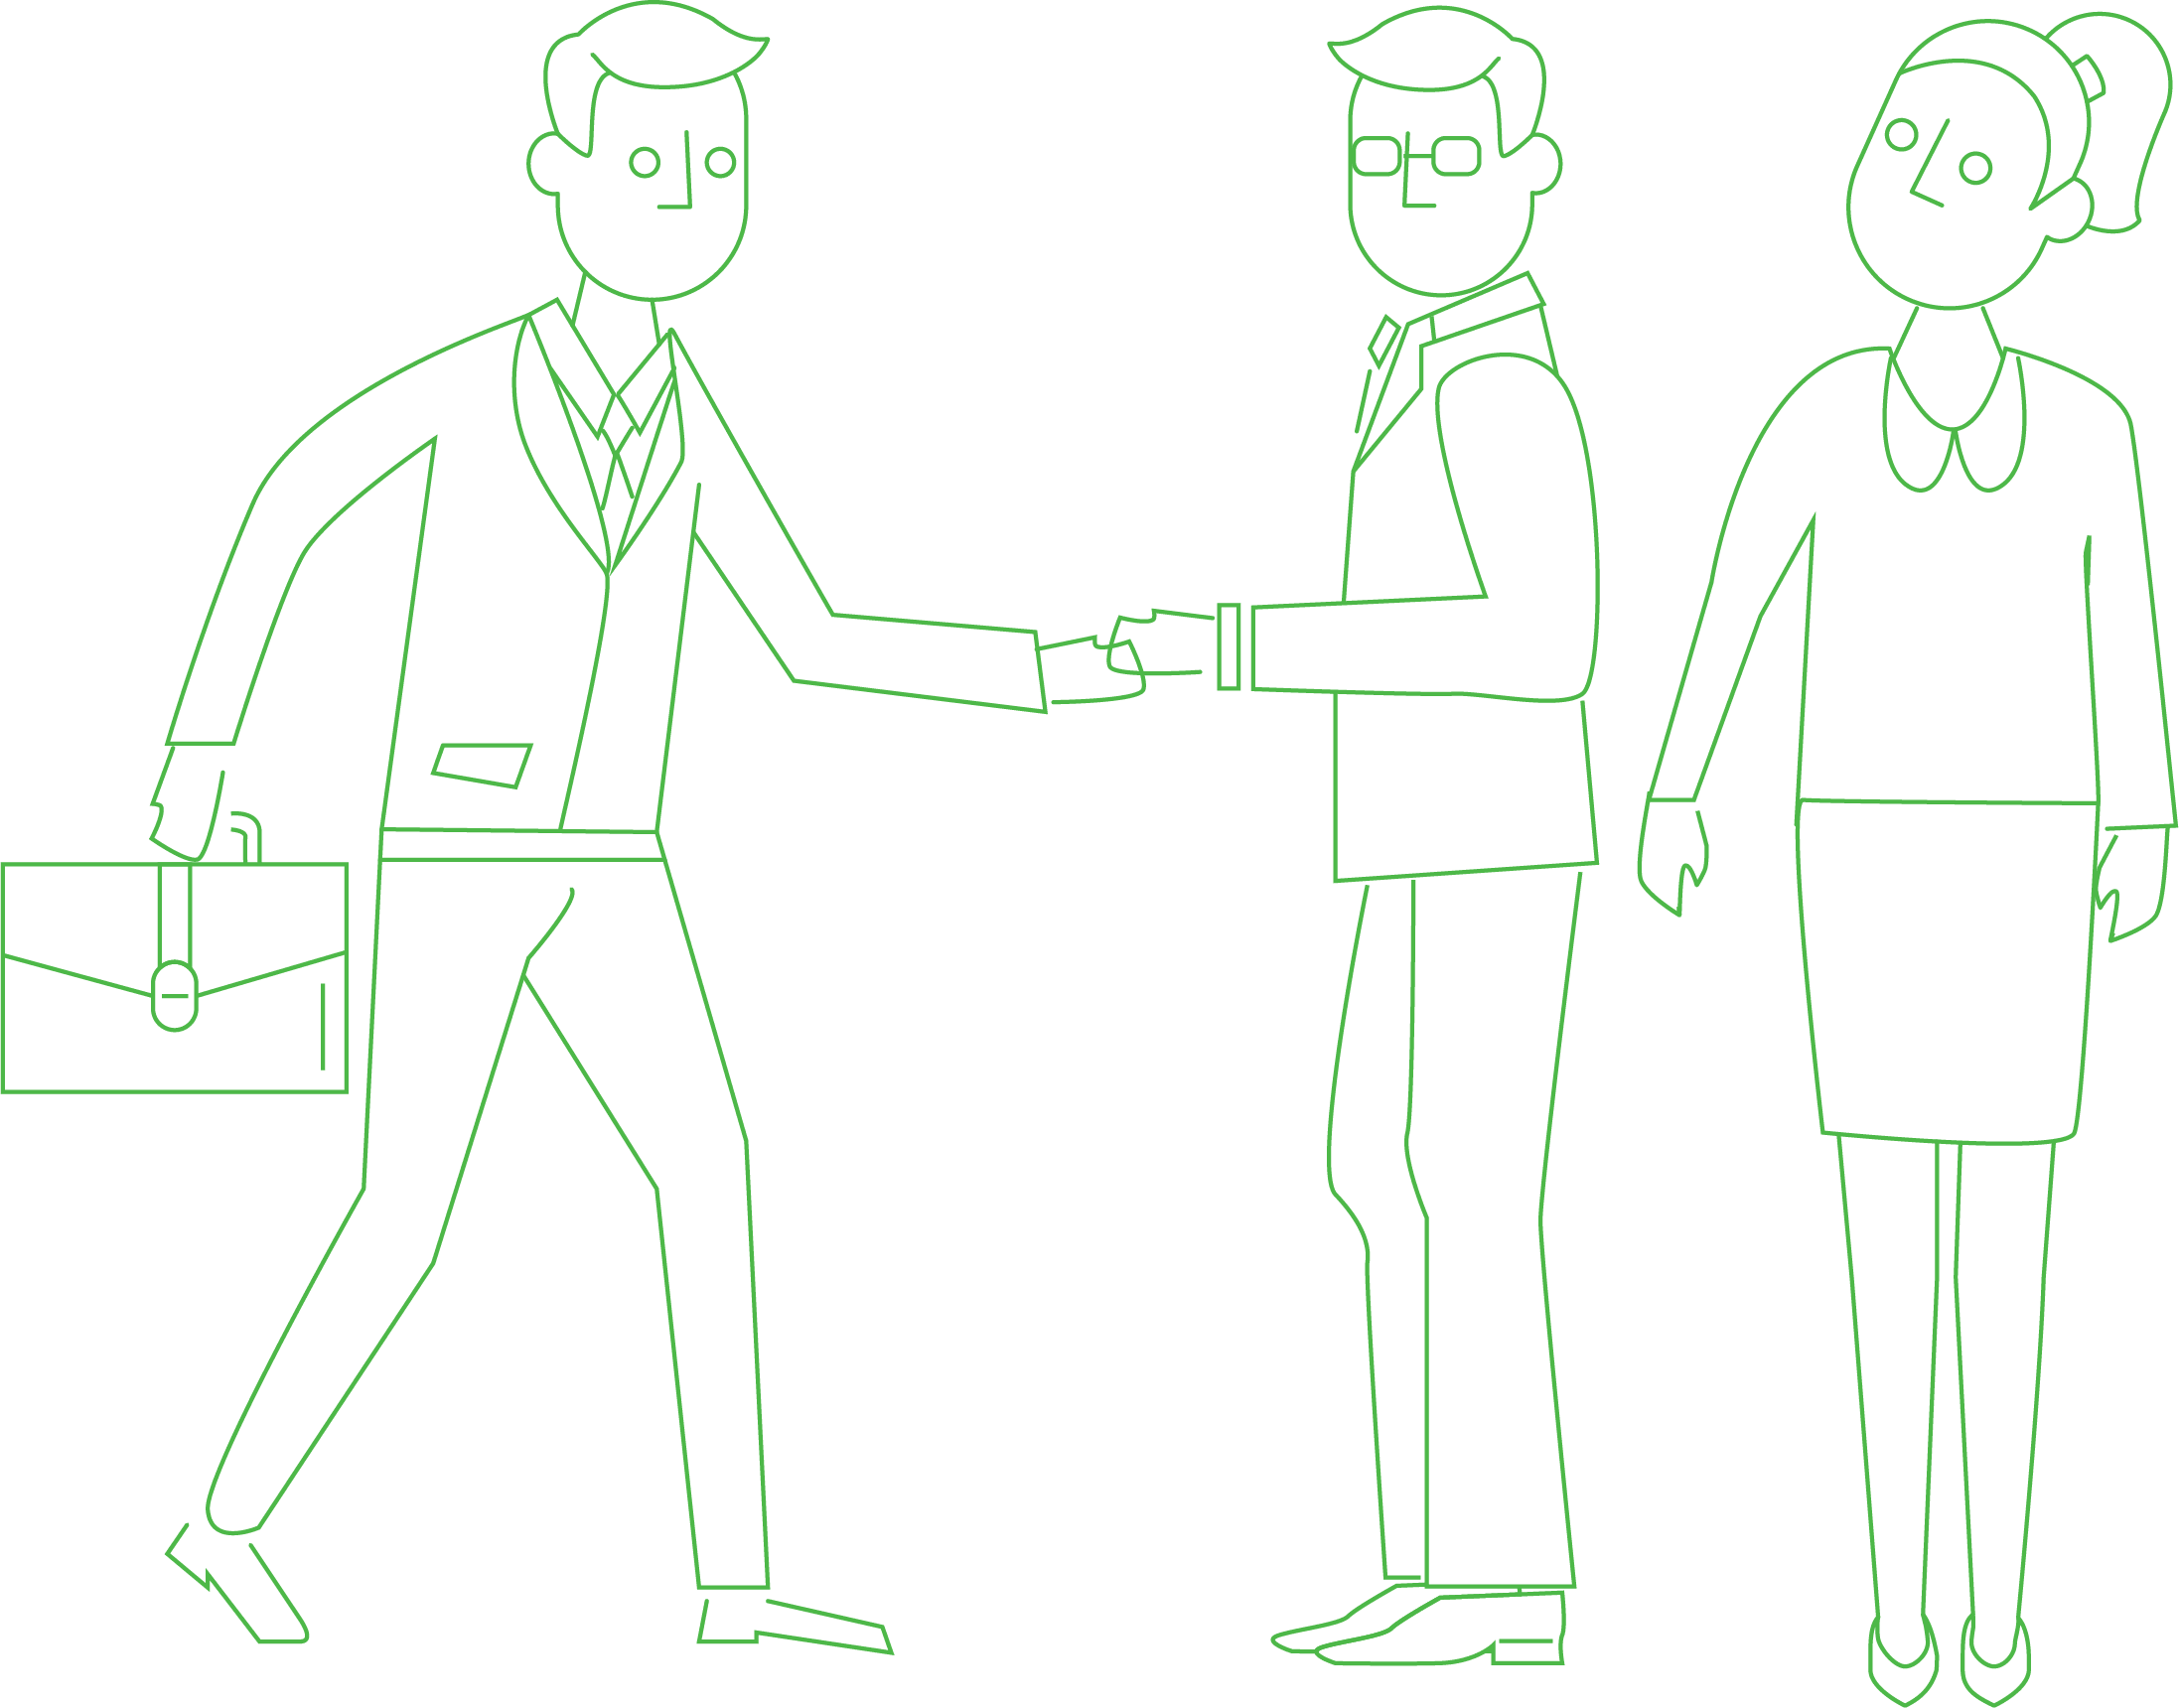 people_agreement_collaboration_work_green.png